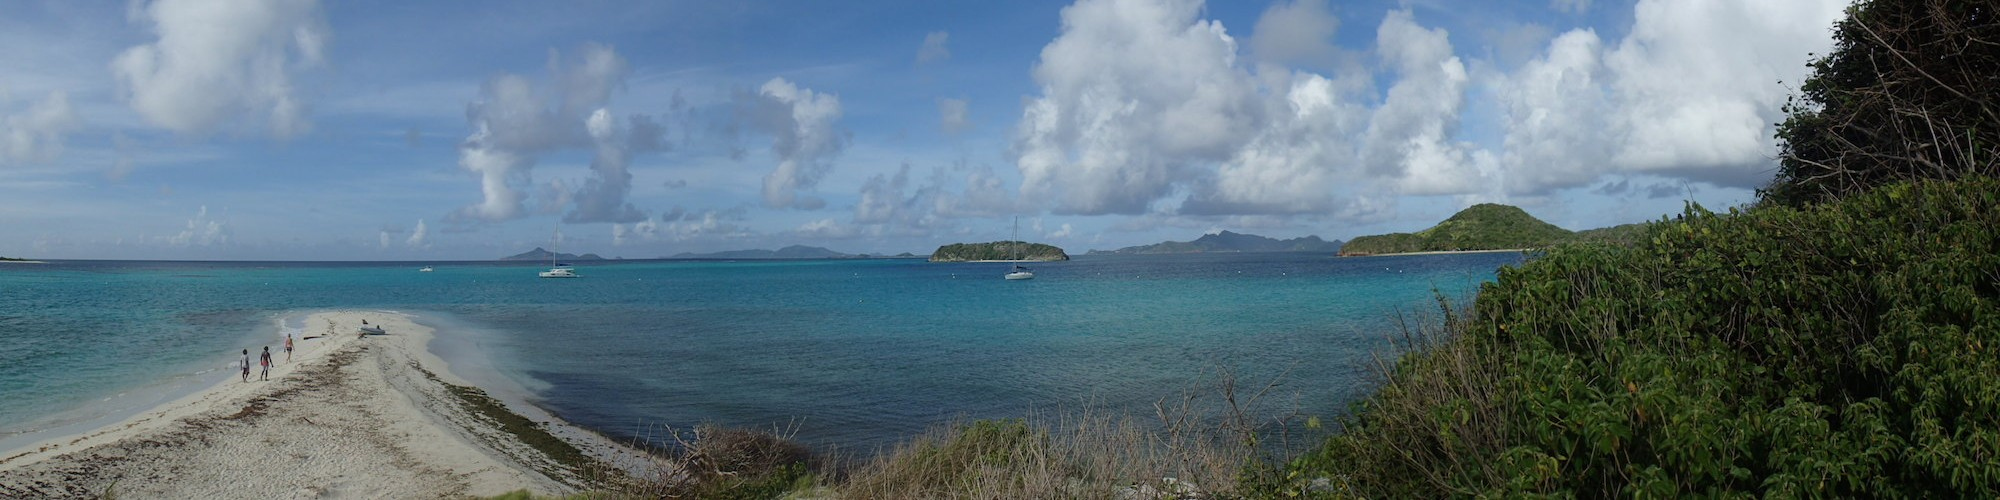 View of the southern Grenadines towards Grenada from the Tobago Cays